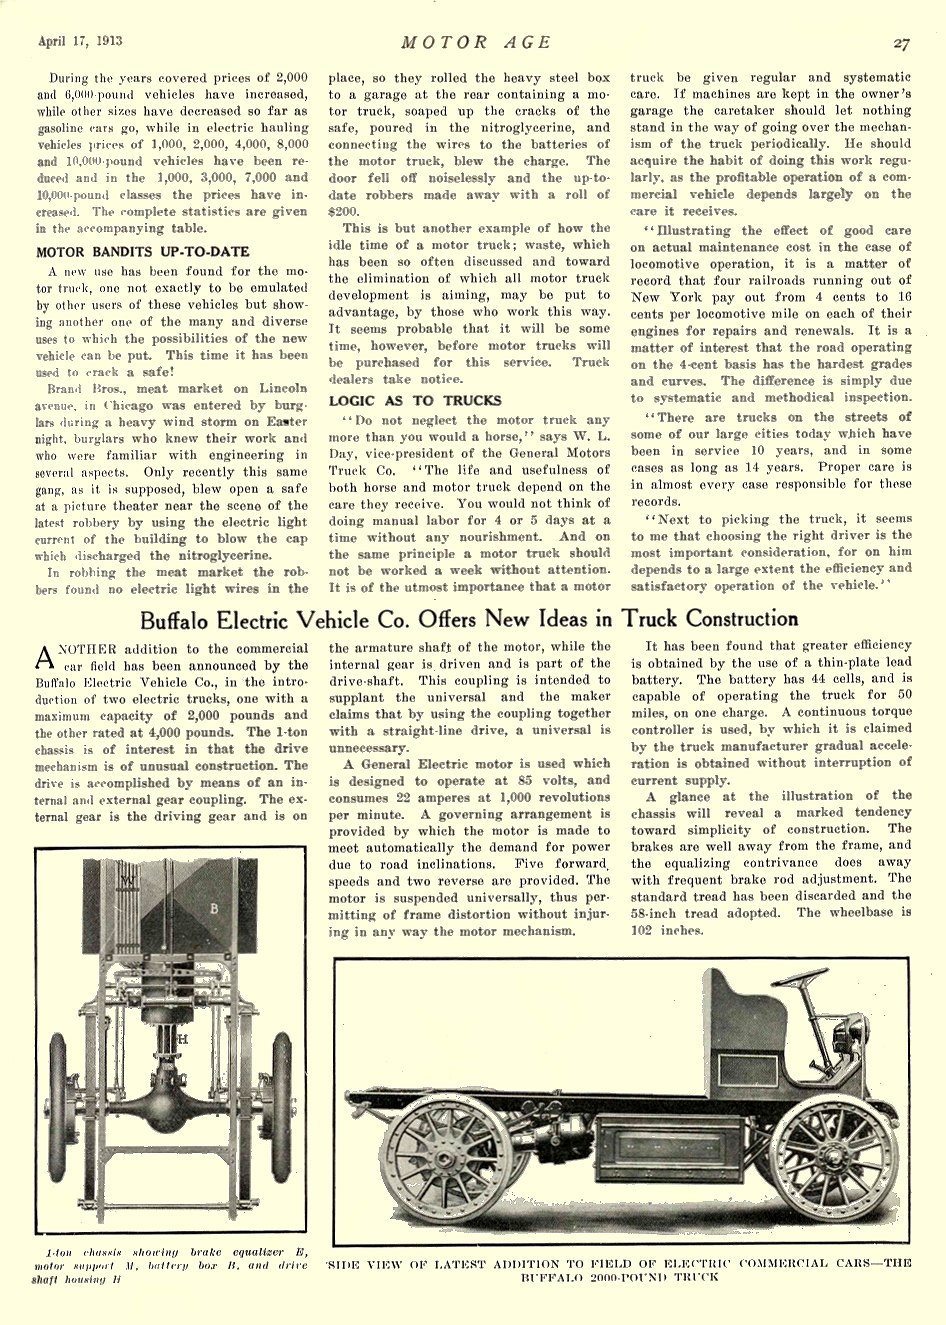 1913 4 17 BUFFALO Electric Article Buffalo Electric Vehicle Co. Offers New Ideas in Truck Construction MOTOR AGE April 17, 1913 University of Minnesota Library 8.5″x11.5″ page 27